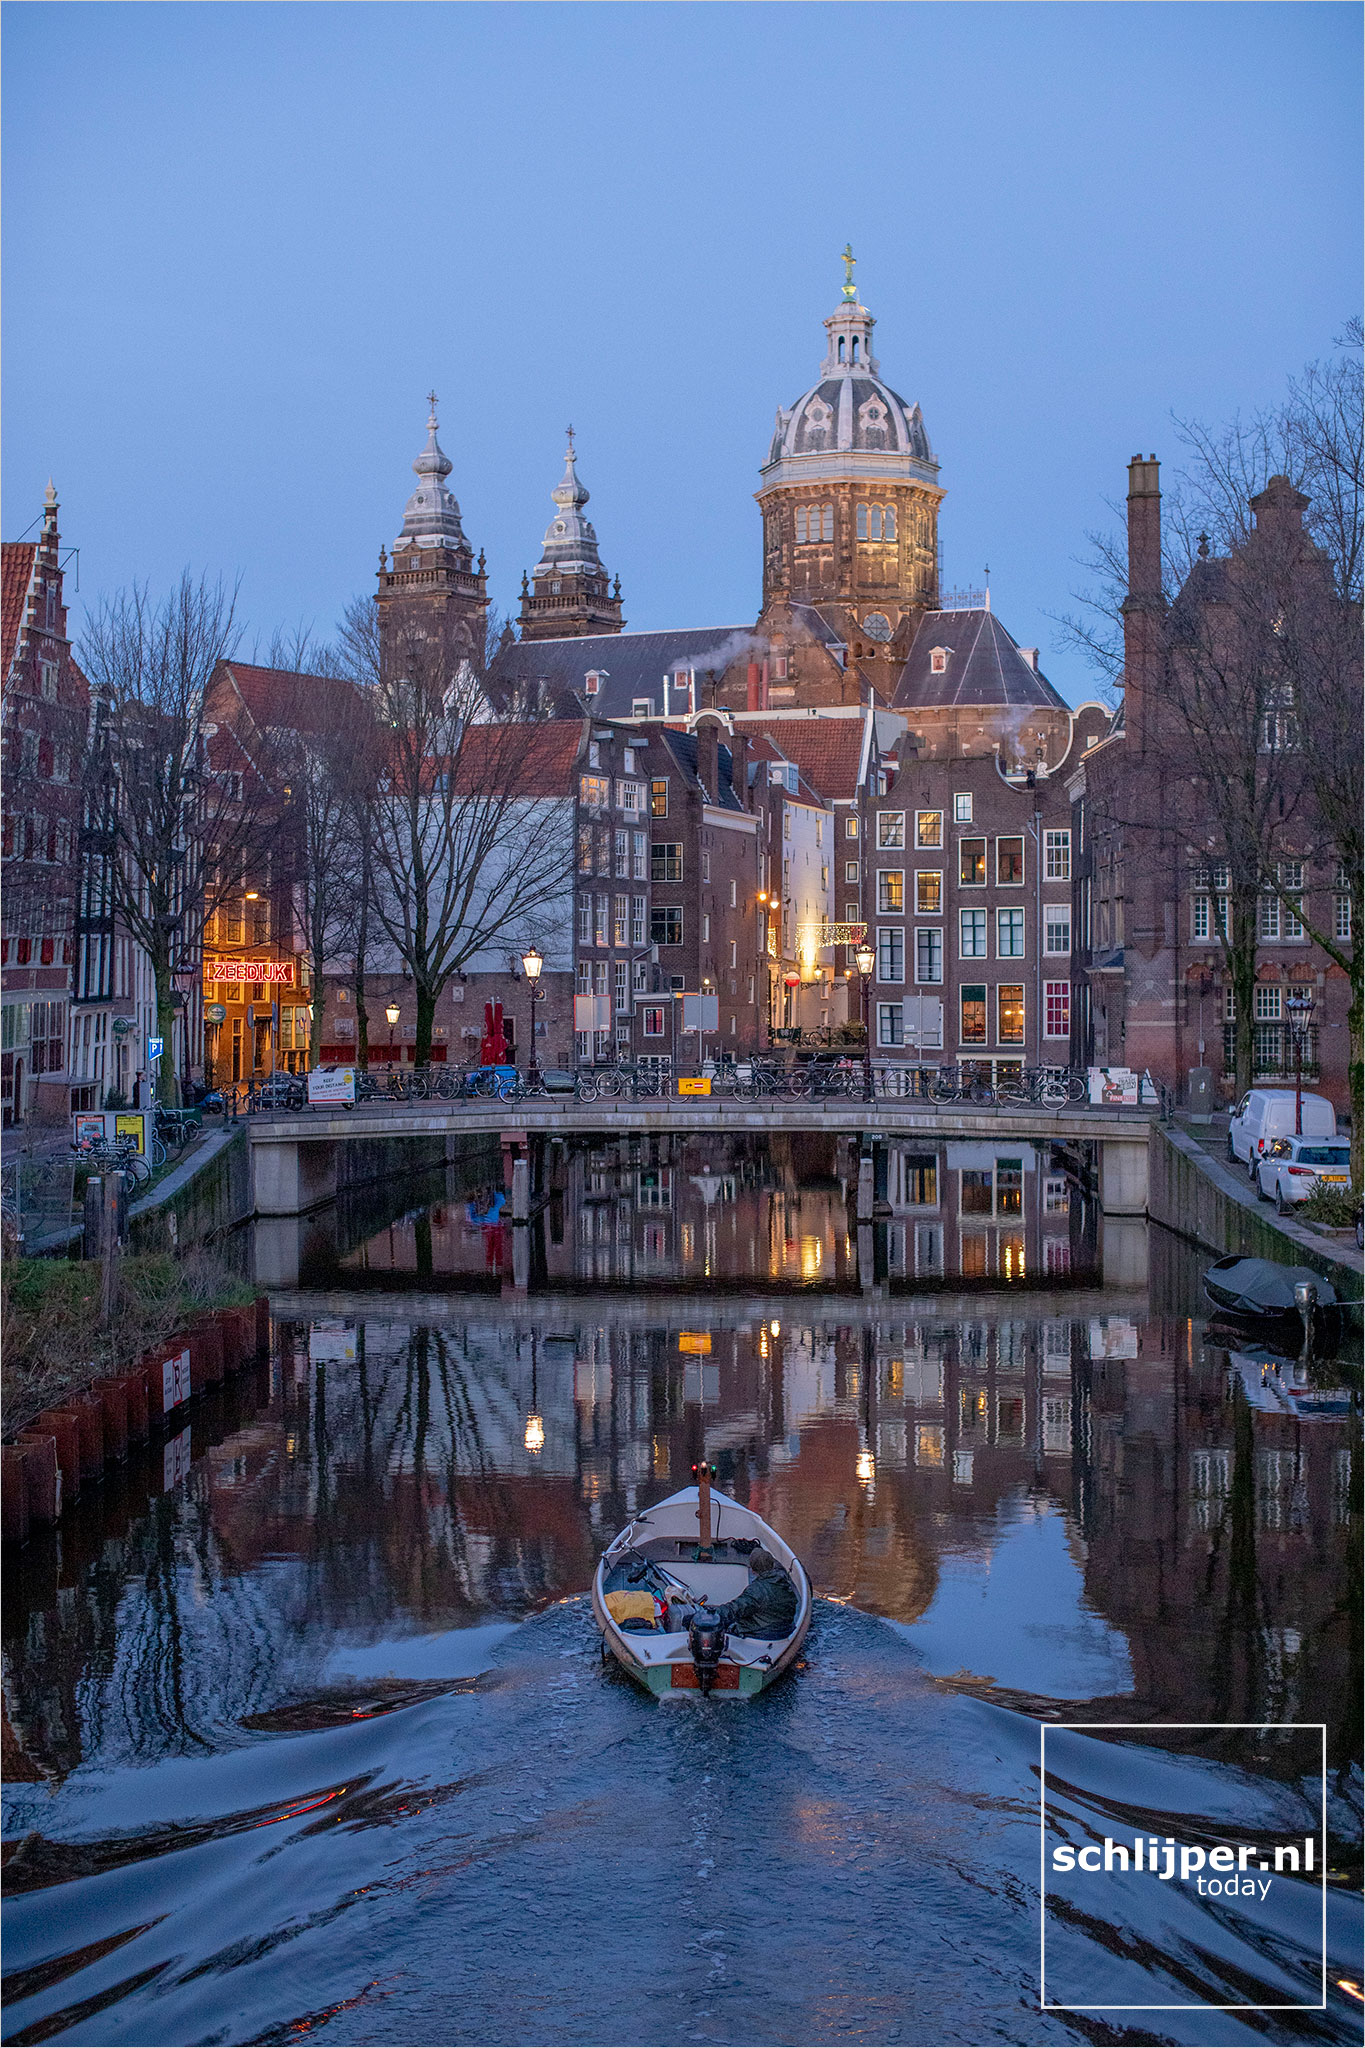 The Netherlands, Amsterdam, 8 januari 2021